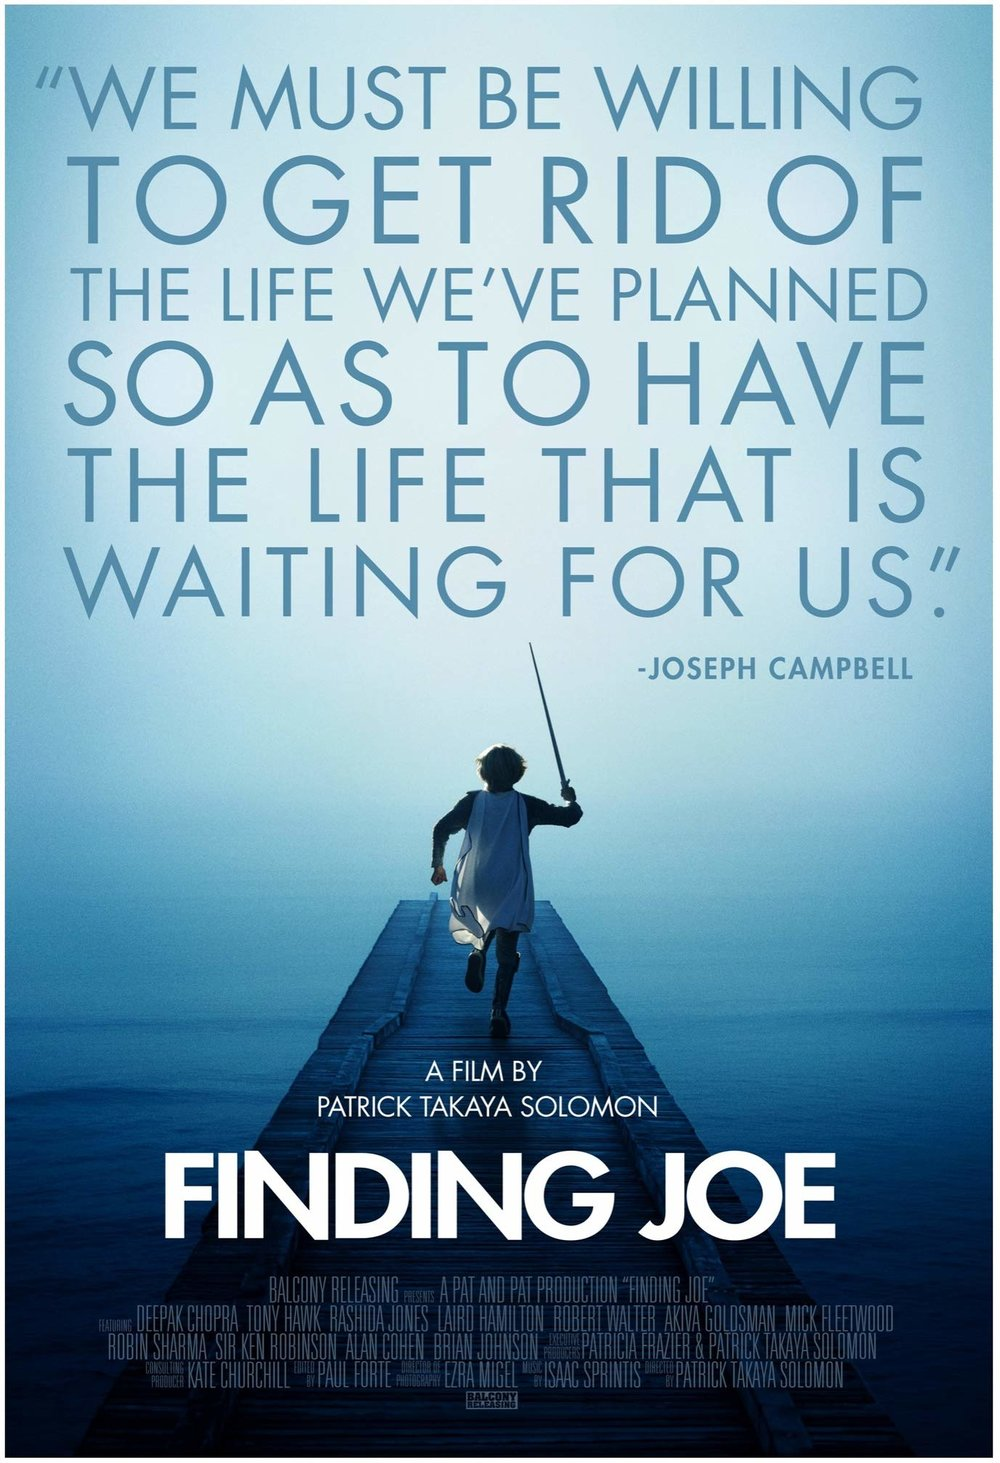 Finding Joe - A beautiful visual description of the Heroes Journey (as described by Joseph Campbell). The Heroes Journey is a lifelong journey all of us embark upon on our way to discovering our purpose and sharing our gifts with the world.